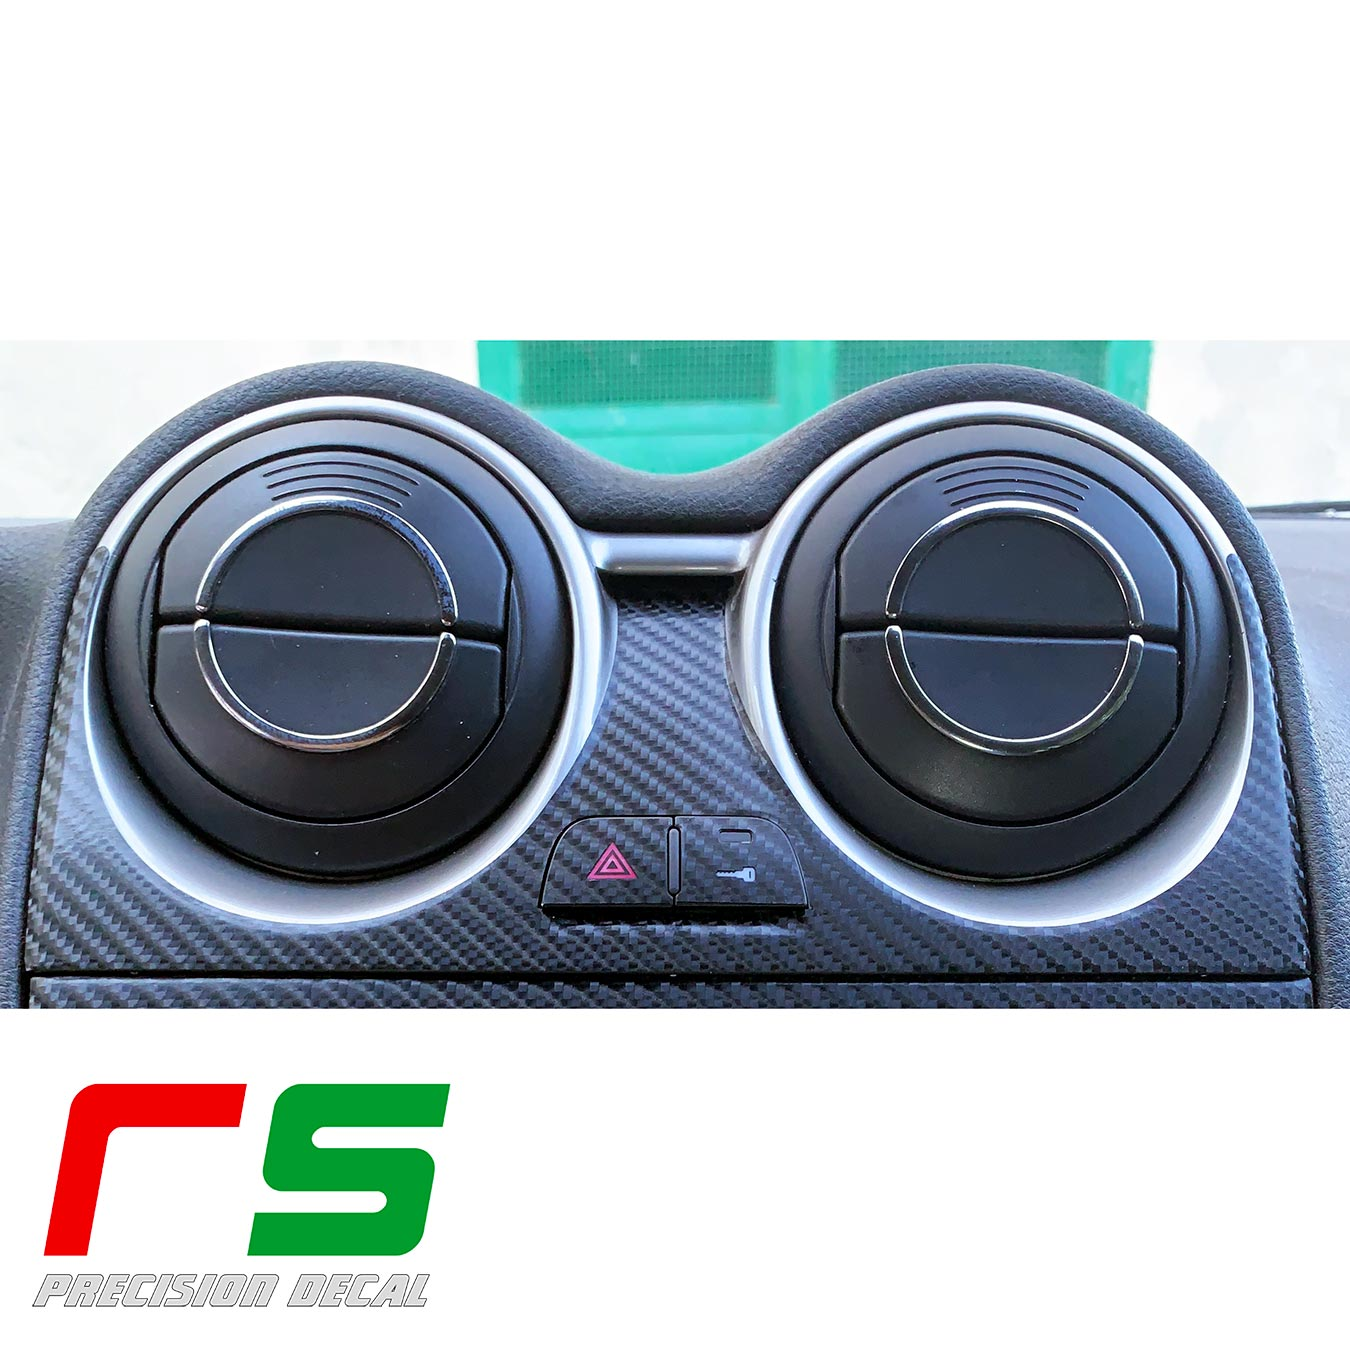 alfa romeo mito STICKERS cover decal console tuning vents carbonlook